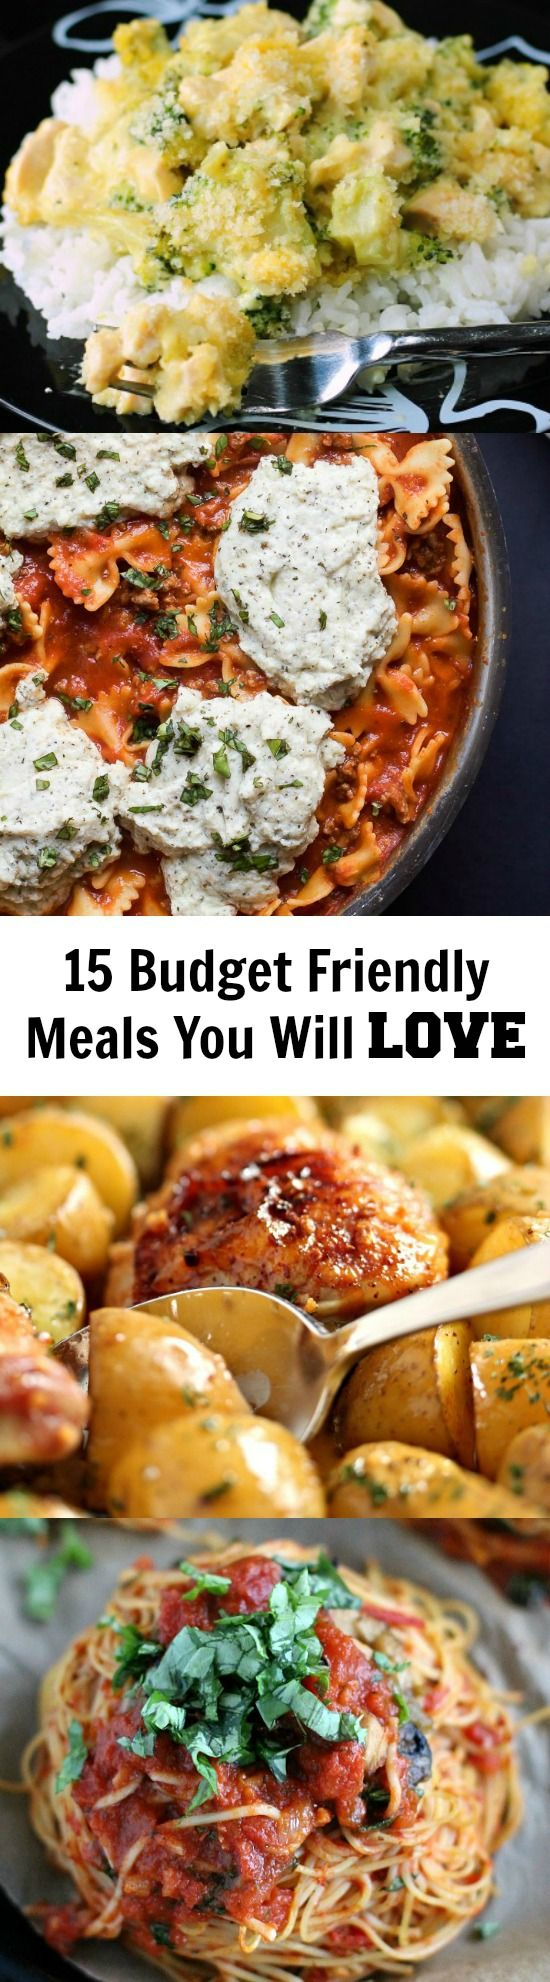 15 Incredible Inexpensive Meals Your Family Will LOVE!: